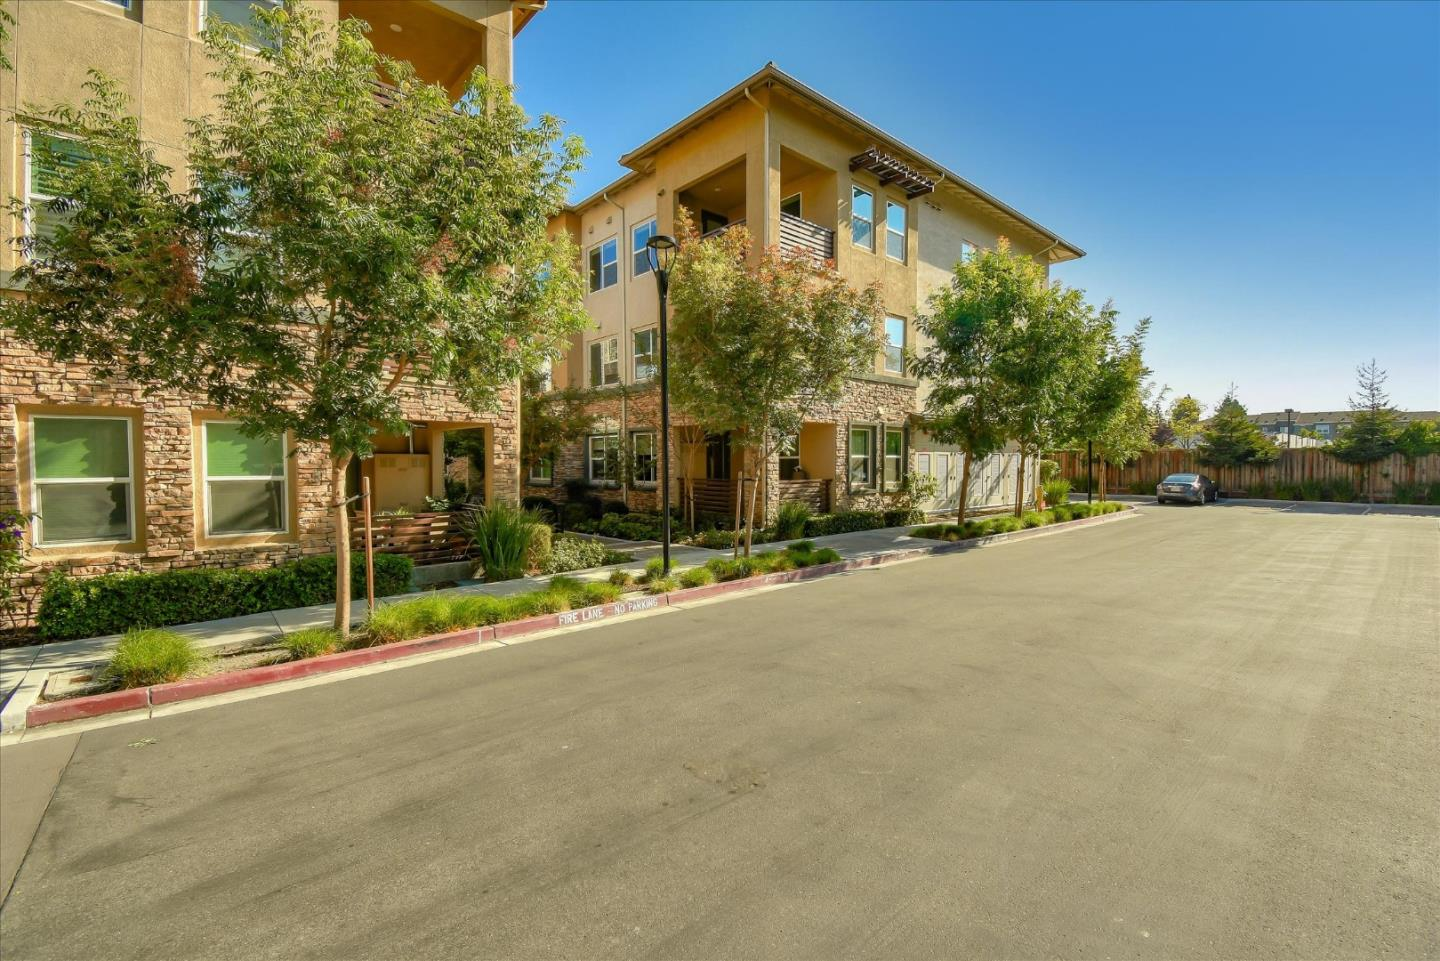 Photo for 1110 Karby TER 301, SUNNYVALE, CA 94089 (MLS # ML81817960)